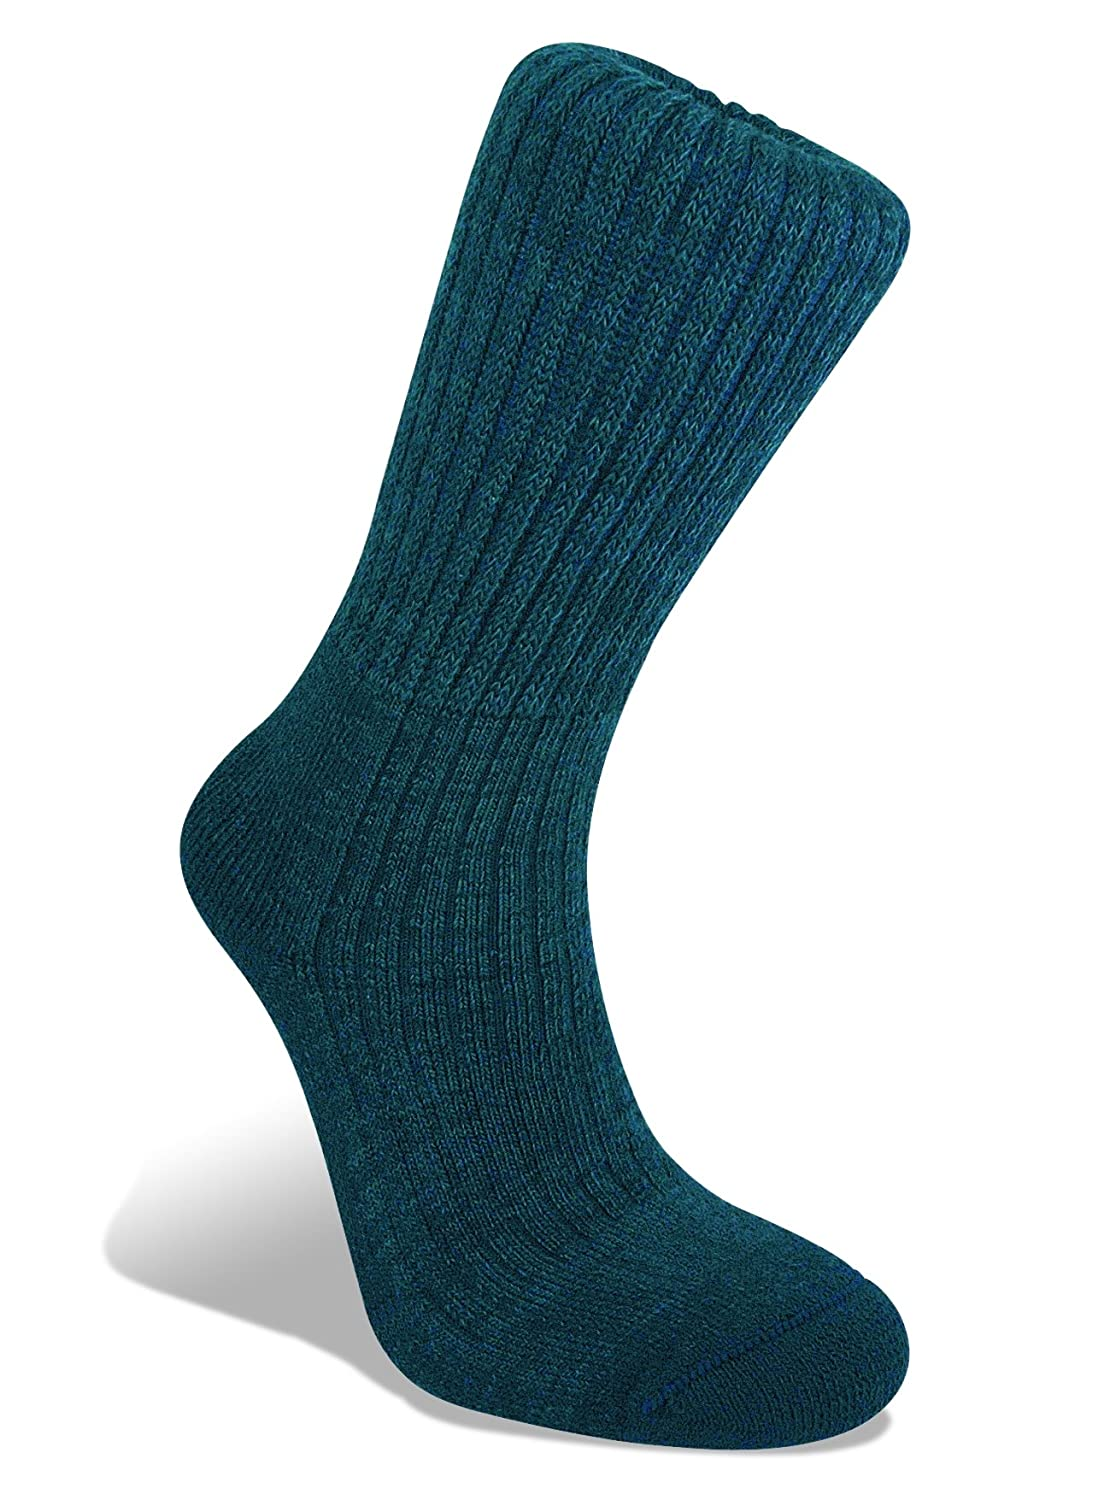 Bridgedale Merinofusion Trekker Men's Sock 218U3318-408